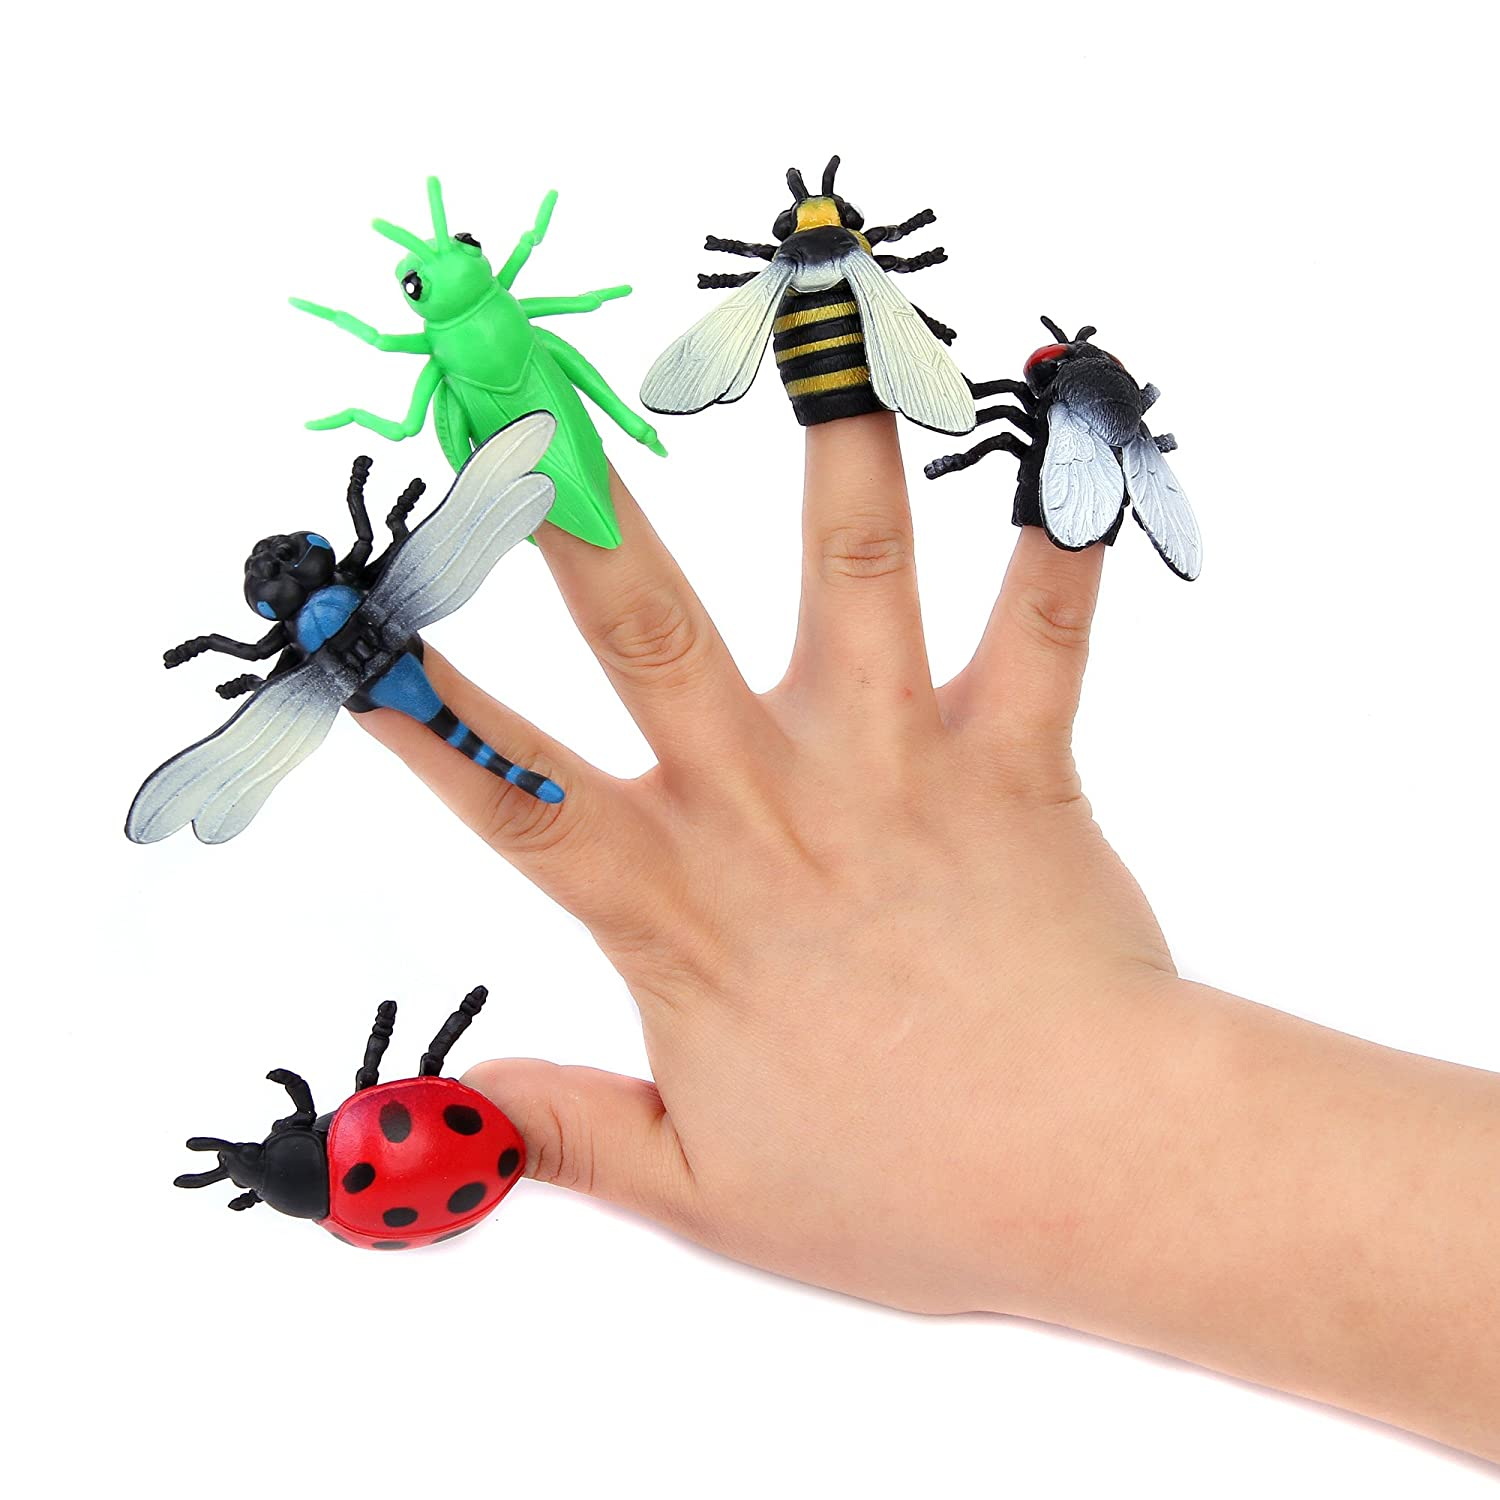 Fun Central AZ922 12 Pieces Assorted Insect Finger Puppets for Kids, Plastic Insects and Bugs Toys, Finger Puppets Set